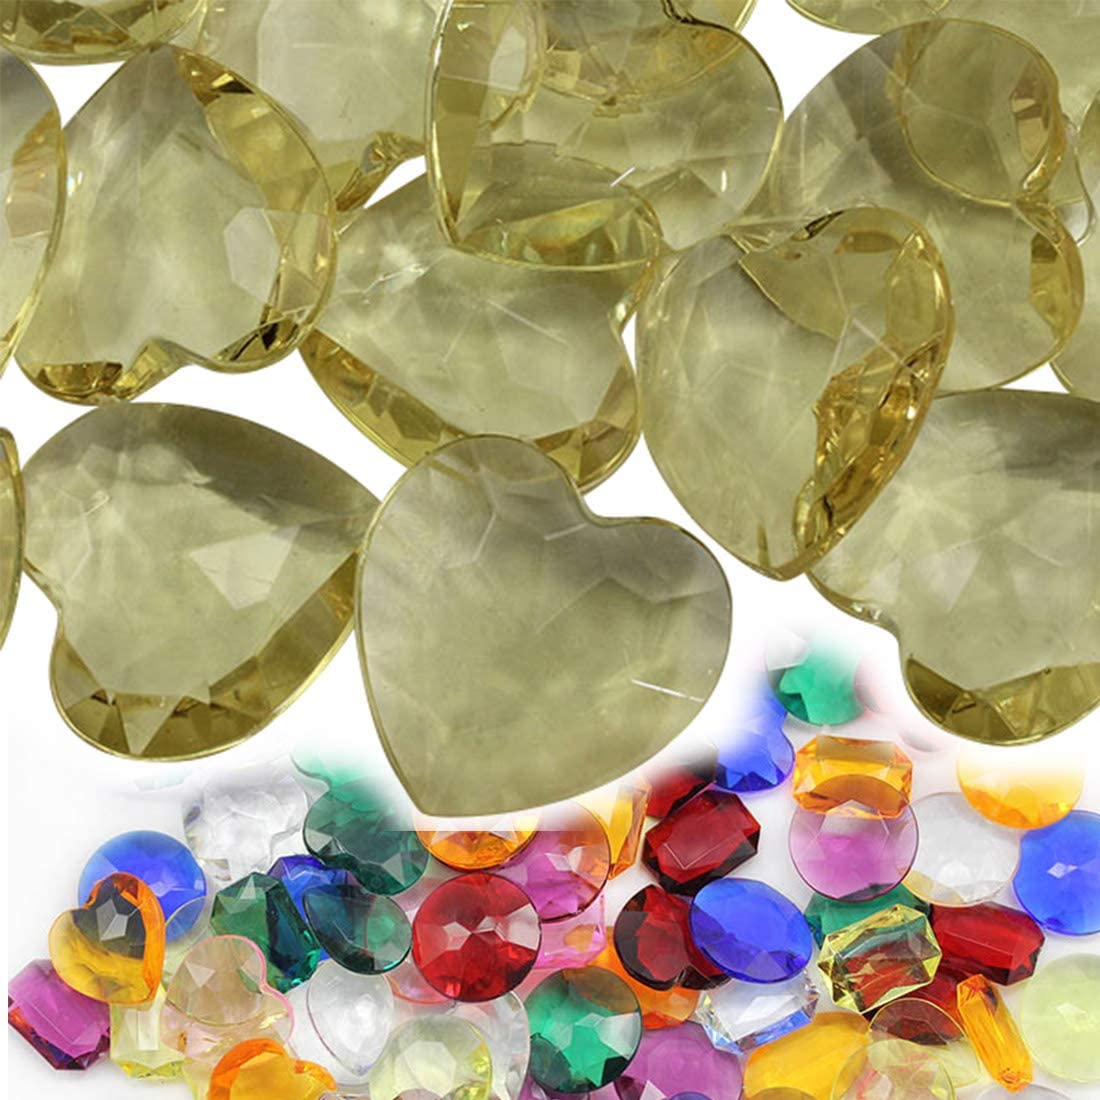 27mm Yellow CH23 Heart Acrylic Pirate Treasure Gems Plastic Jewels for Party & Games, Table Scatter, Vase Fillers, Wedding Decor Gemstones Favors - 20 Pieces